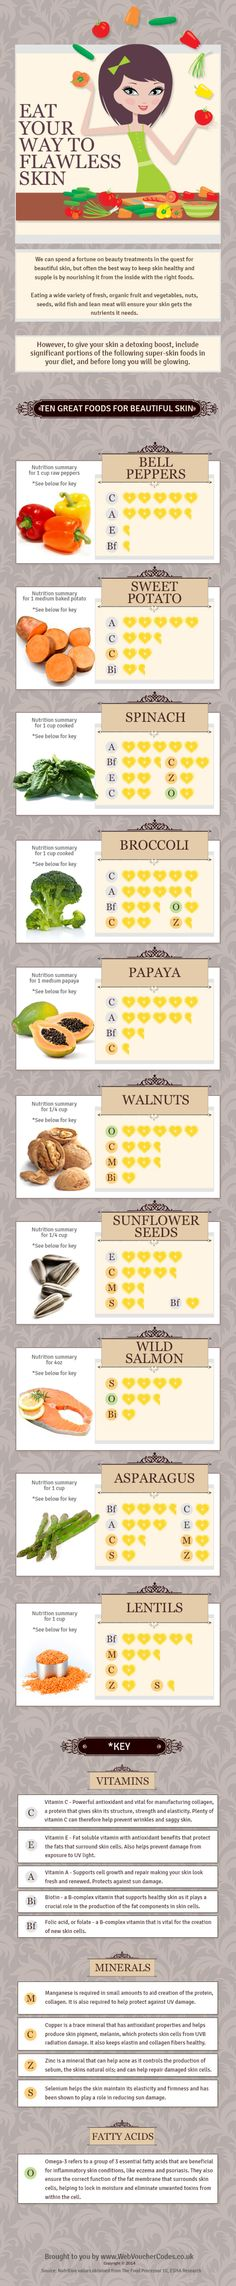 Top Ten Foods for Beautiful Skin Infographic by WebVouchersCodes via visuially.net #Beauty #Skin #Nutrition #Food